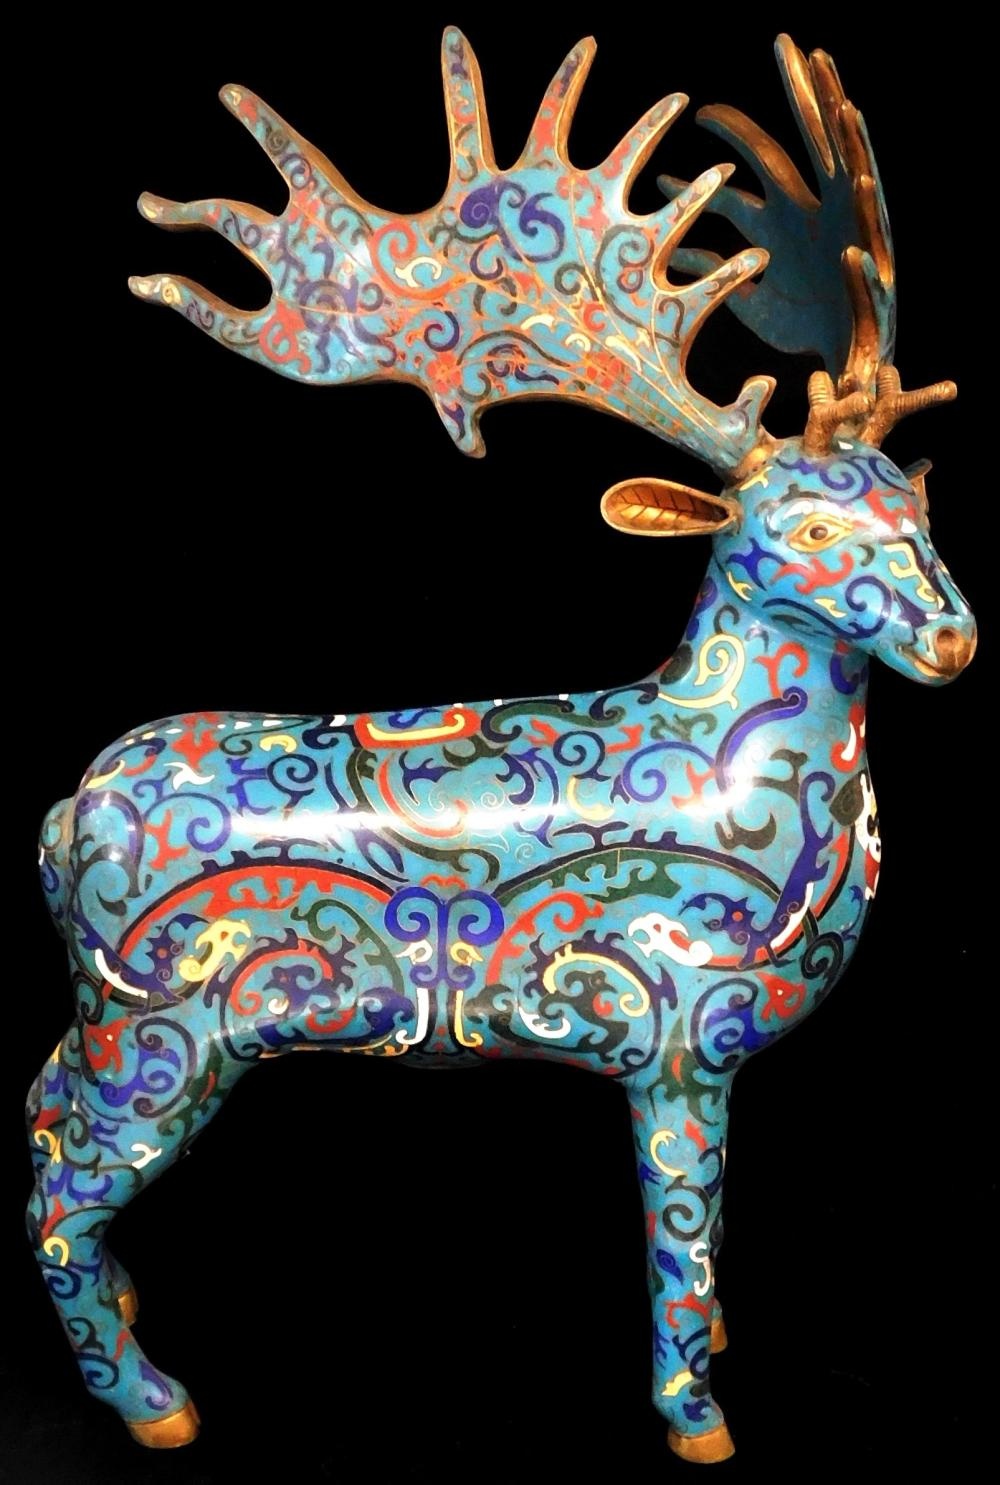 ASIAN: Pair of Chinese cloisonne stags, probably 20th C., polychrome scrolling foliate decoration on blue ground, wear consistent wi...